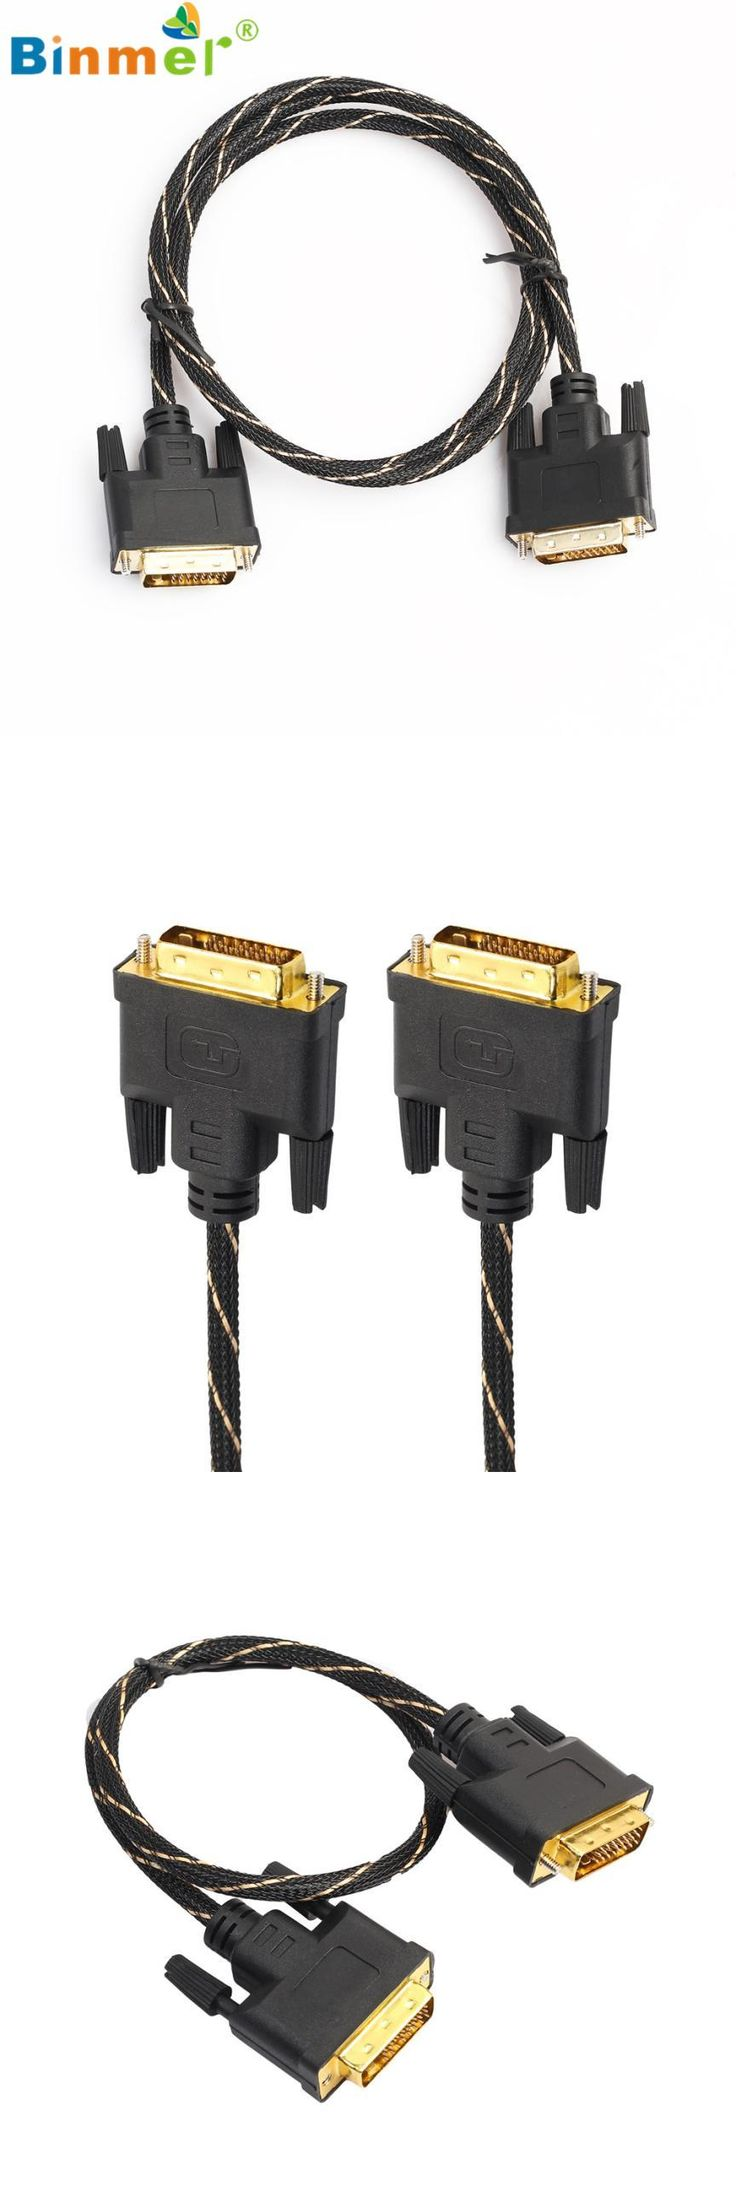 [Visit to Buy] Binmer Superior Quality LCD Digital Monitor DVI D To DVI-D Gold Male 24+1 Pin Dual Link TV Cable For TFT Apr01 #Advertisement